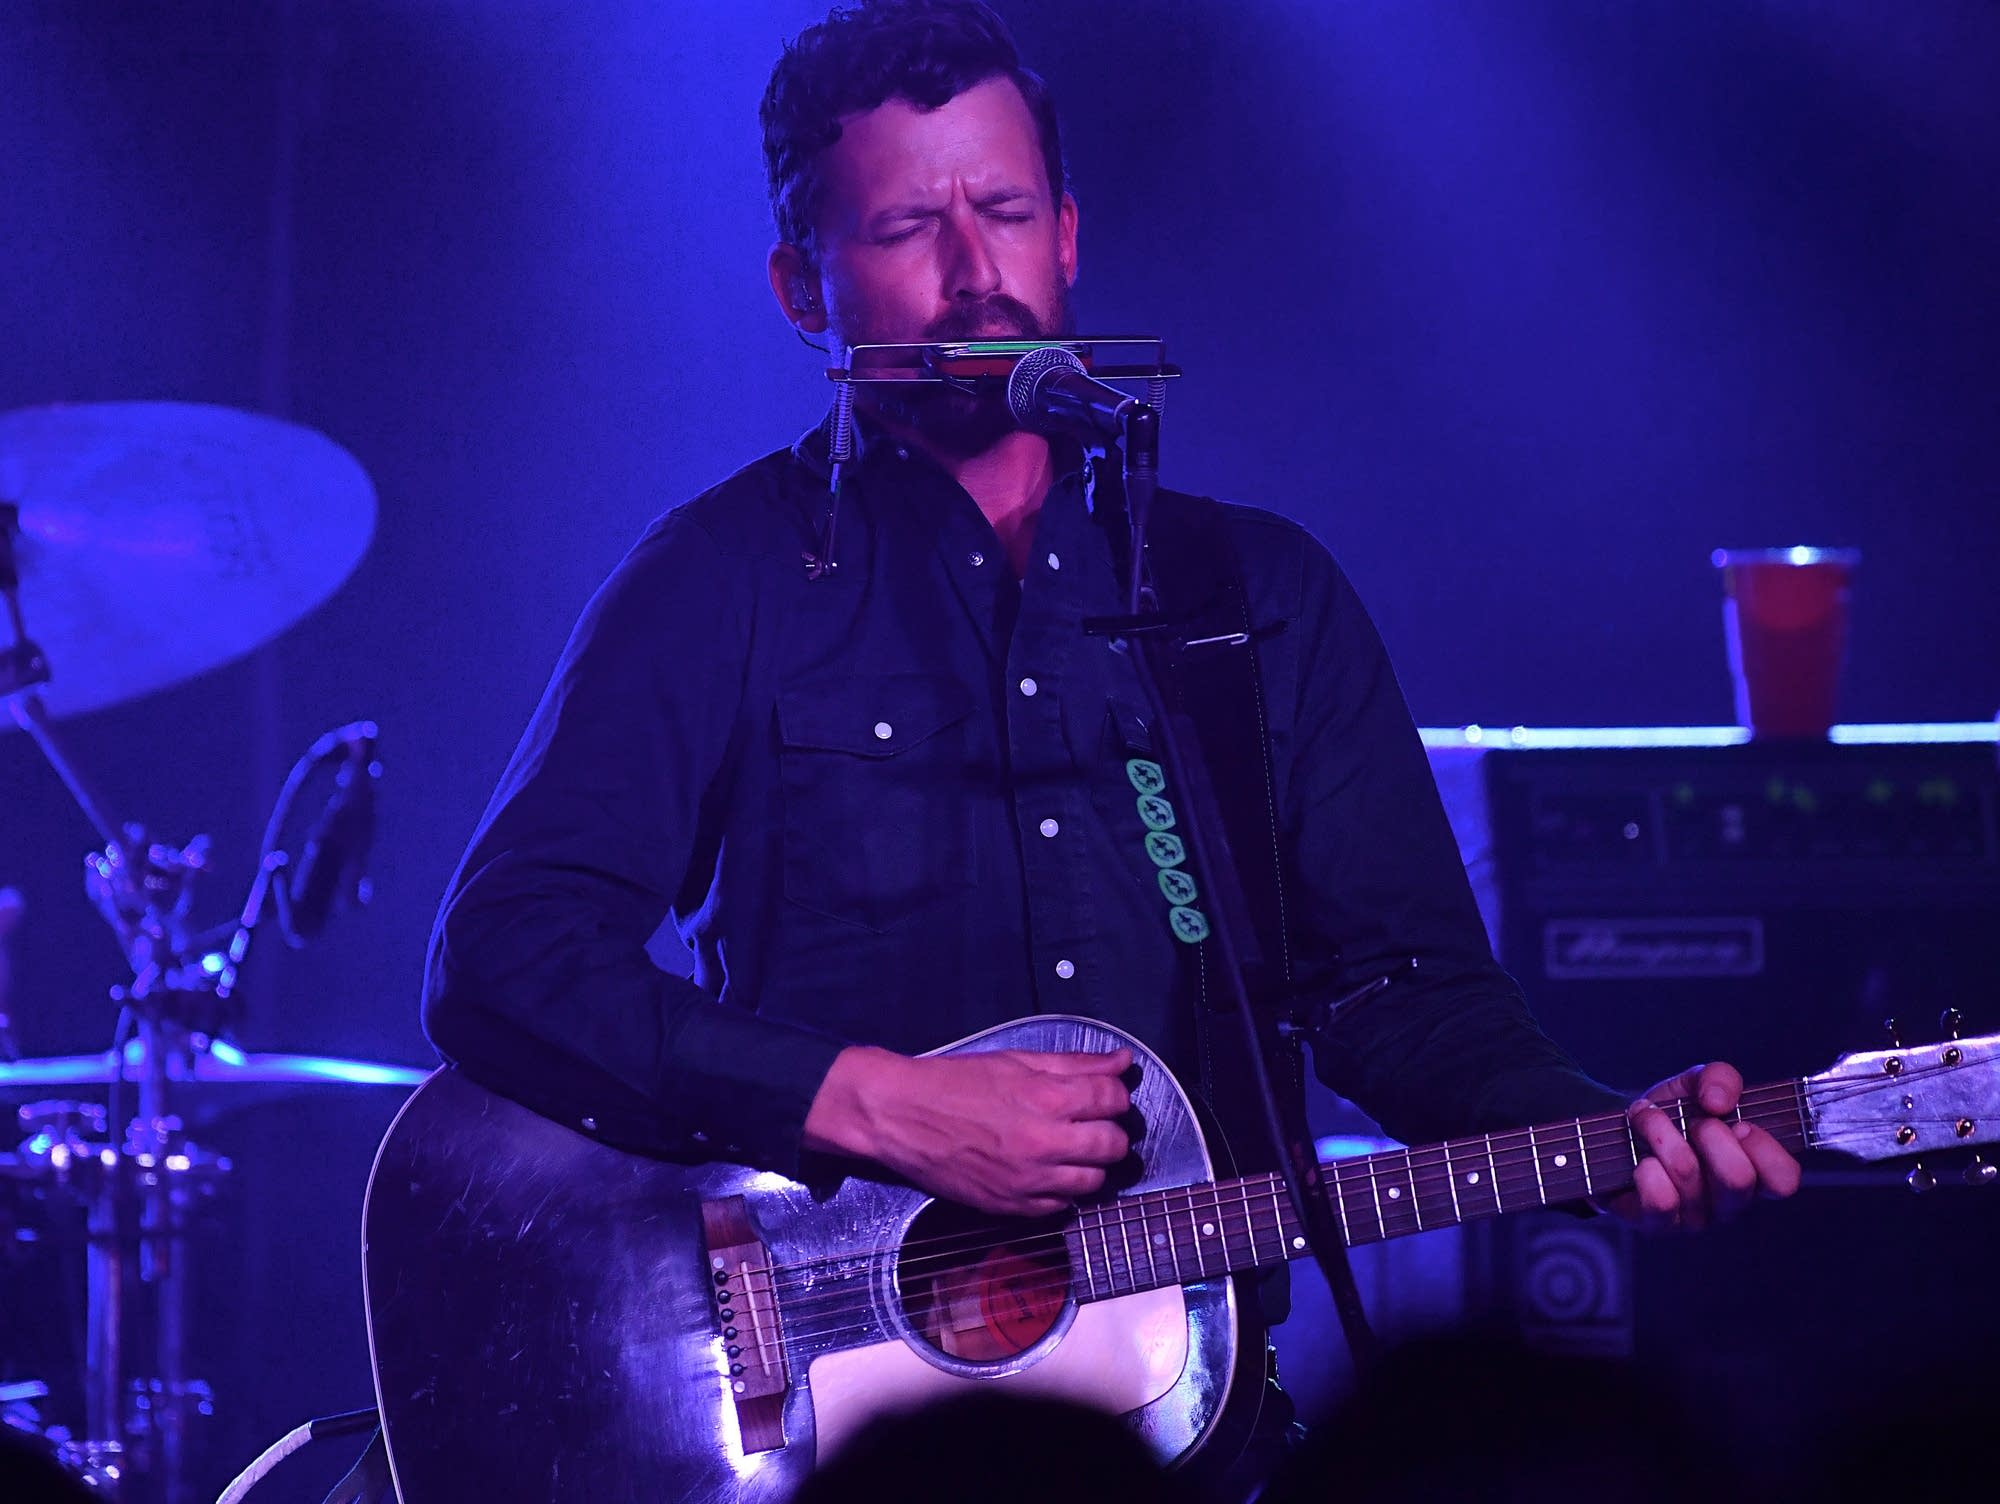 Turnpike Troubadours performs on-stage during the Americana Music Festival